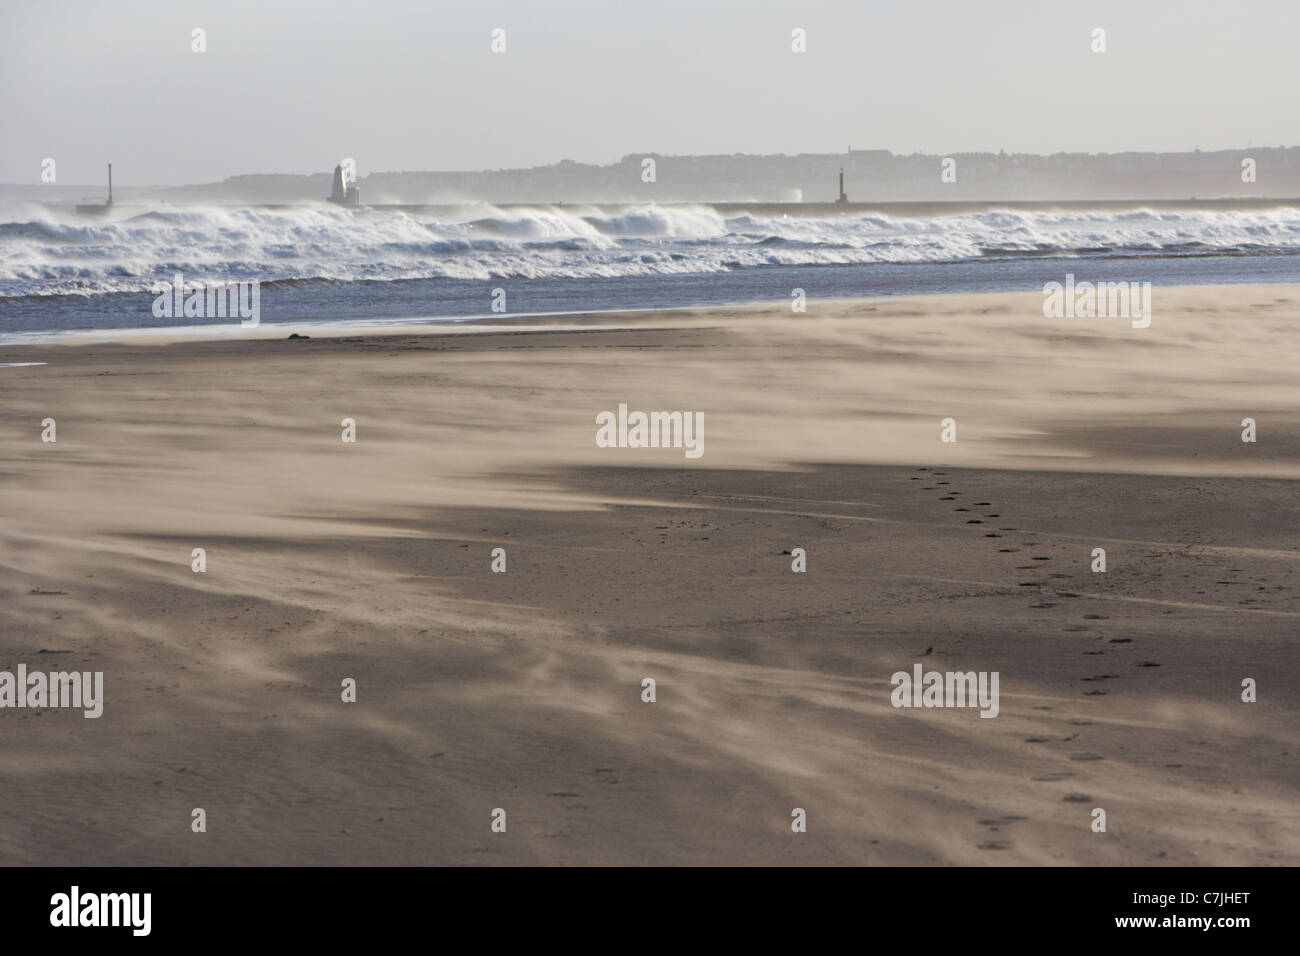 wind blowing sand over castlerock beach county derry londonderry northern ireland uk - Stock Image